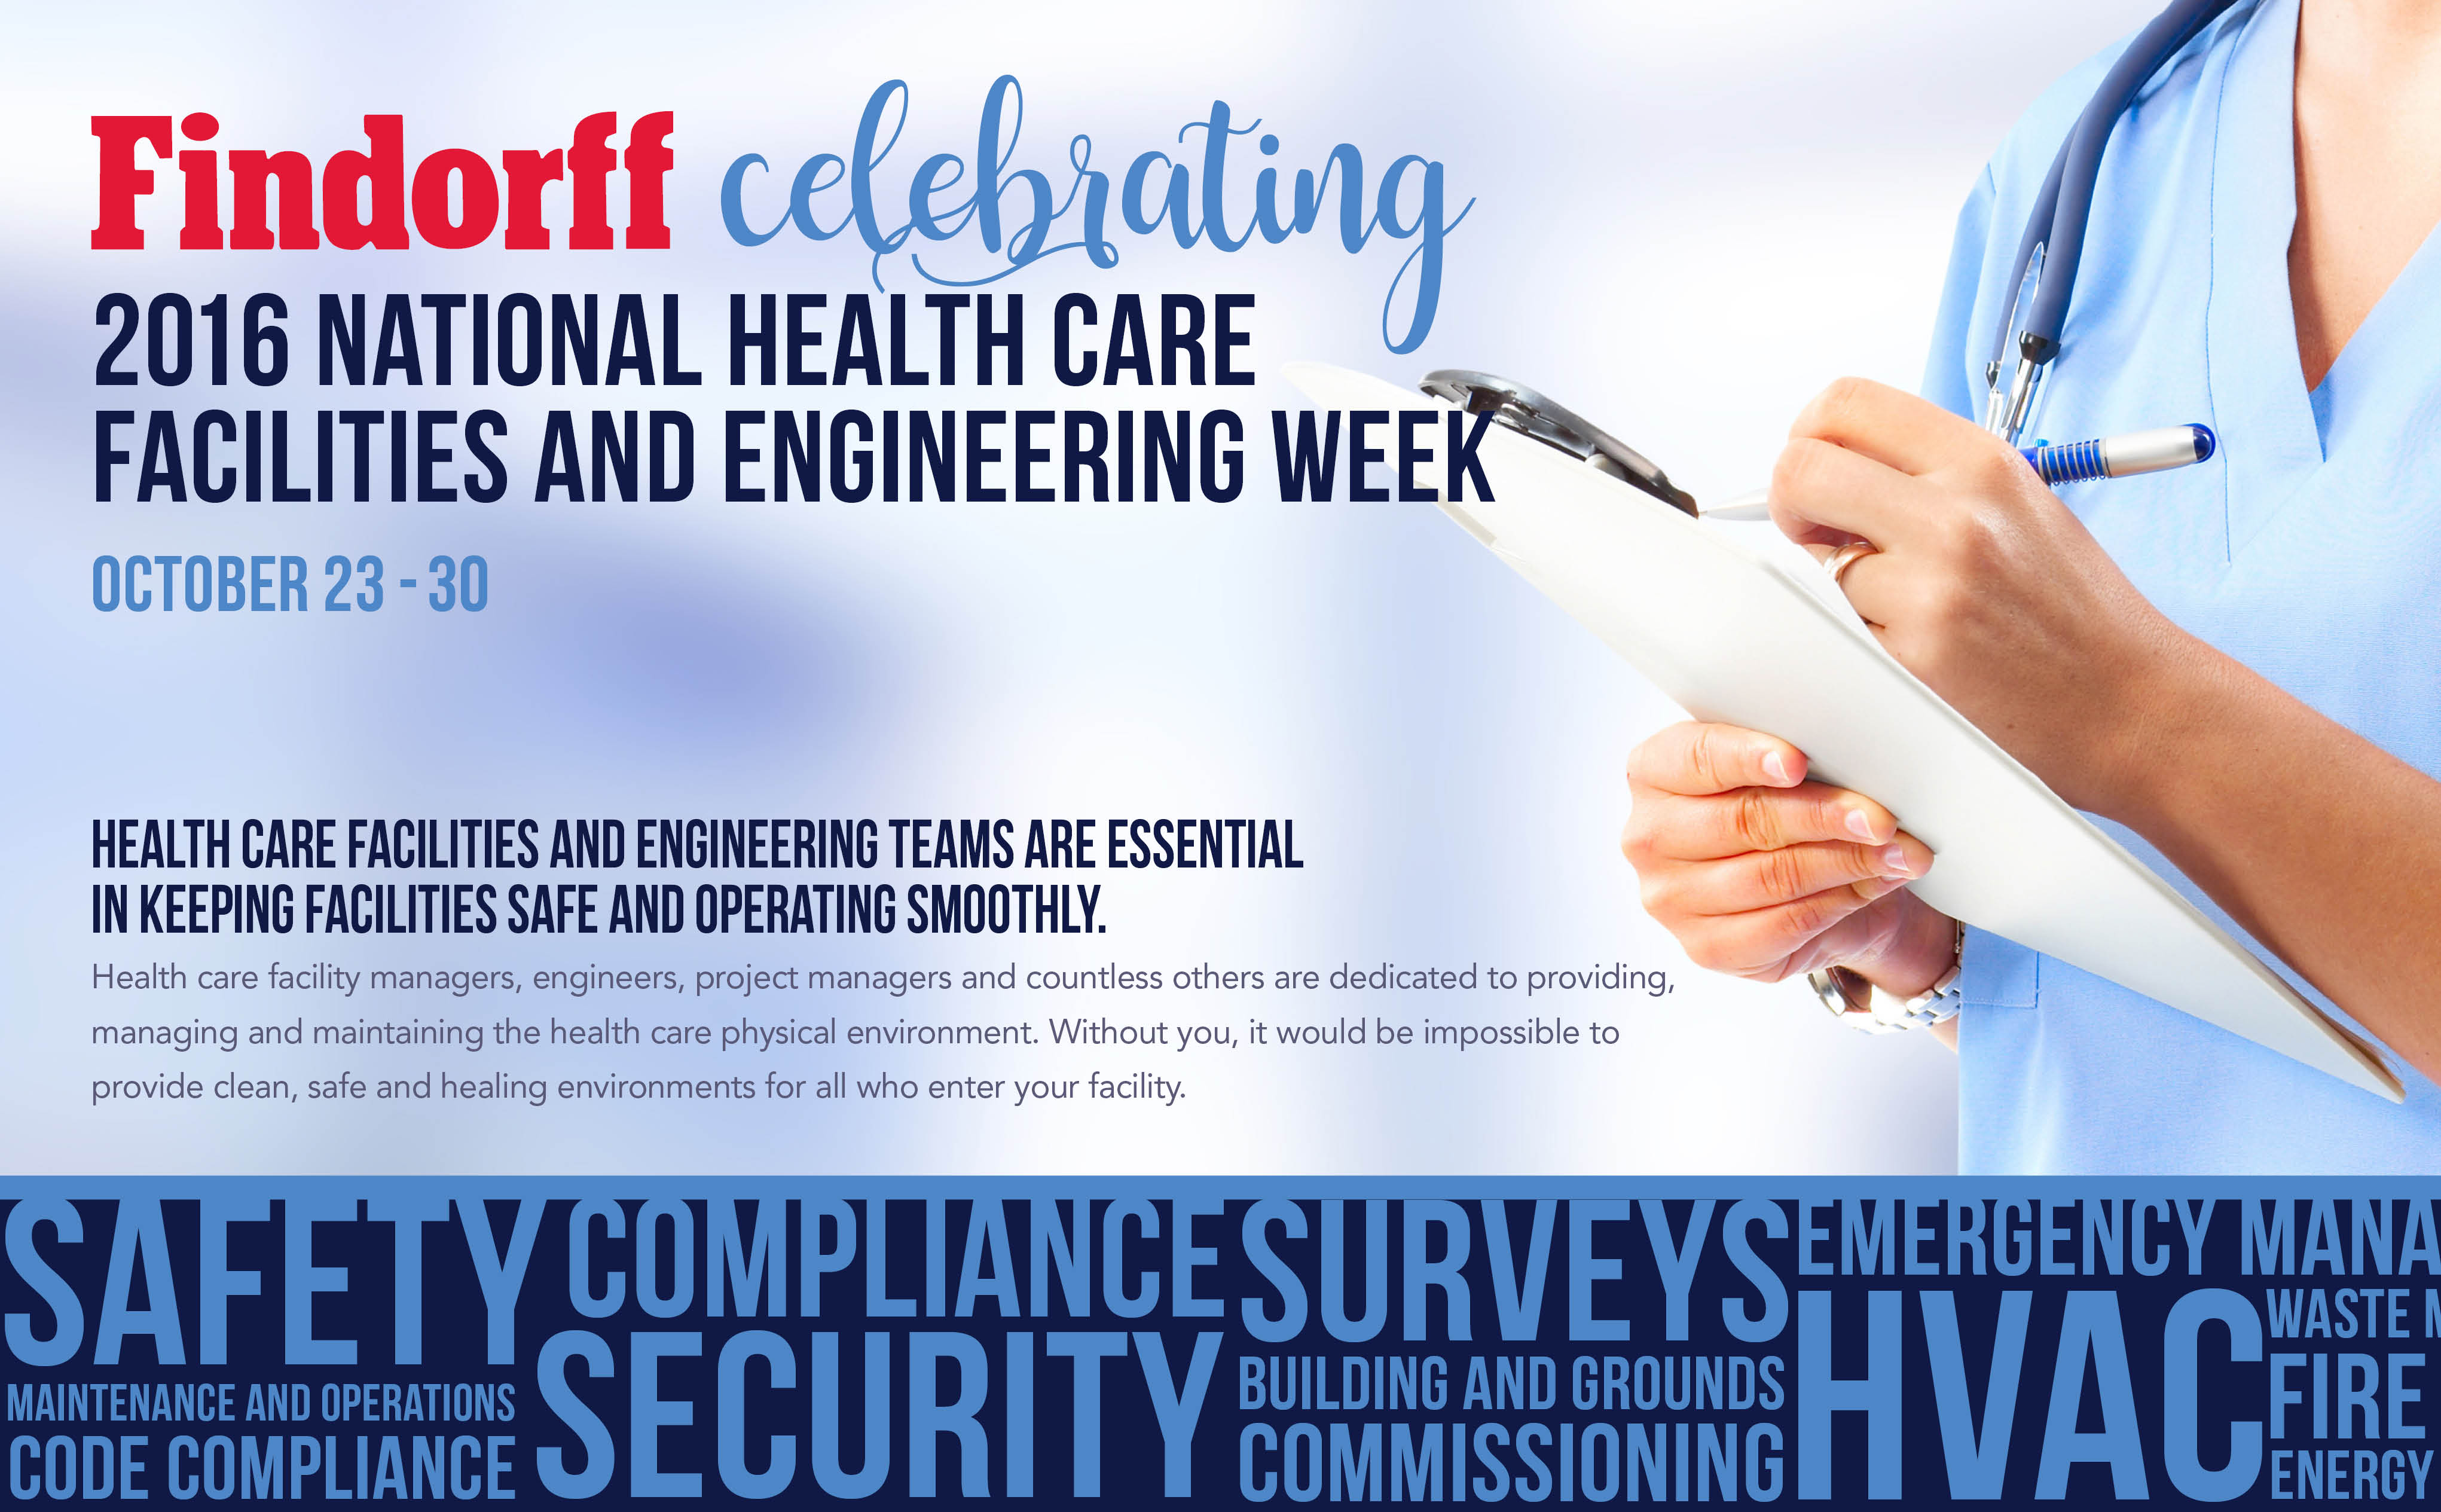 2016 National Healthcare Facilities and Engineering Week